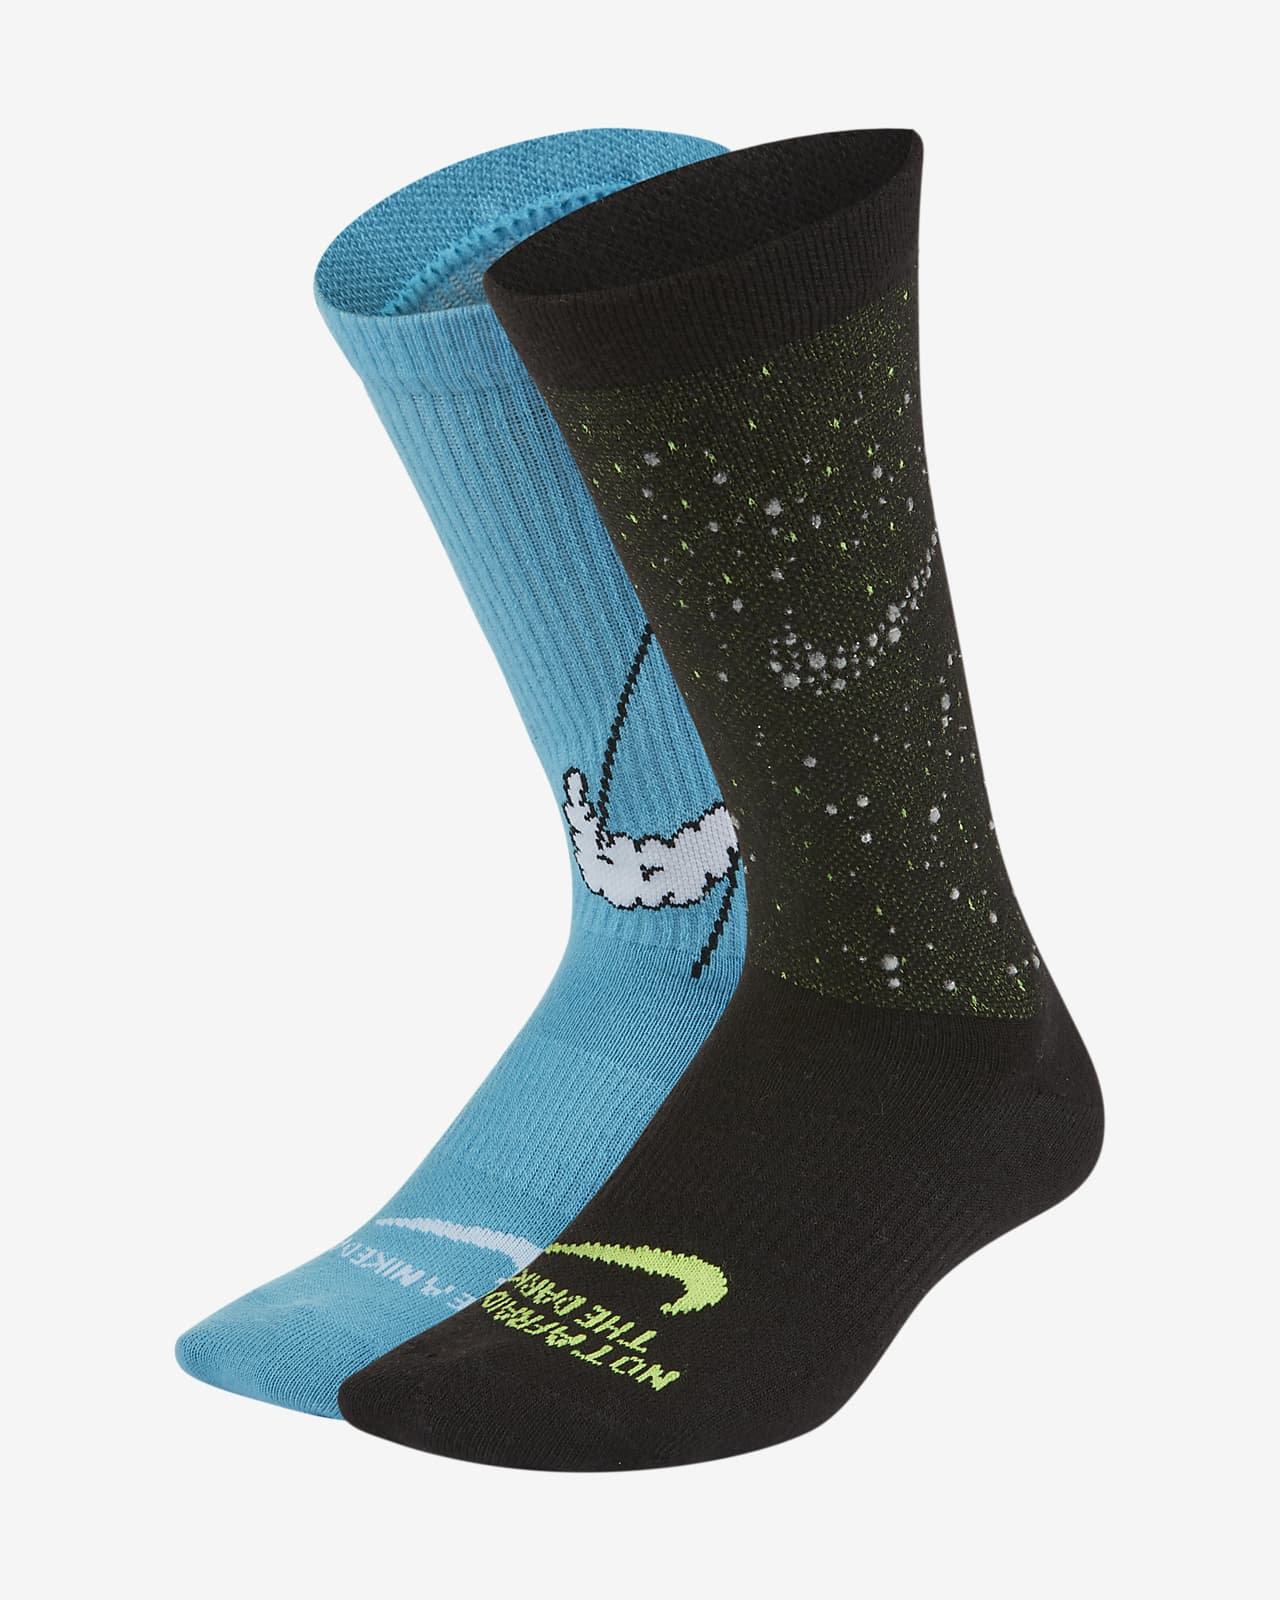 Nike Everyday leichte Crew-Kindersocken (2 Paar)